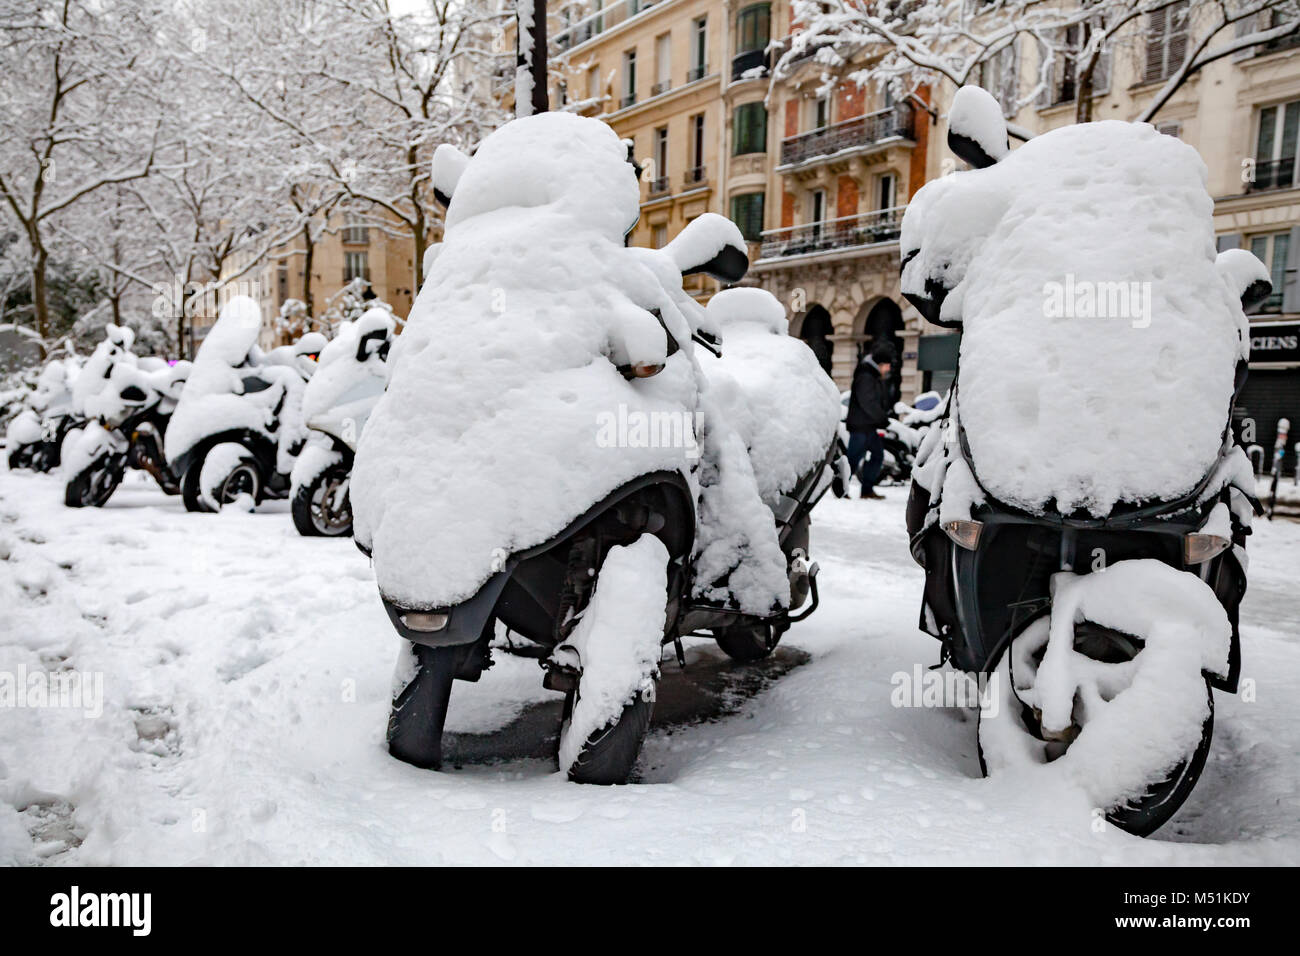 Snow covered motorcycles and scooters in Paris - Stock Image